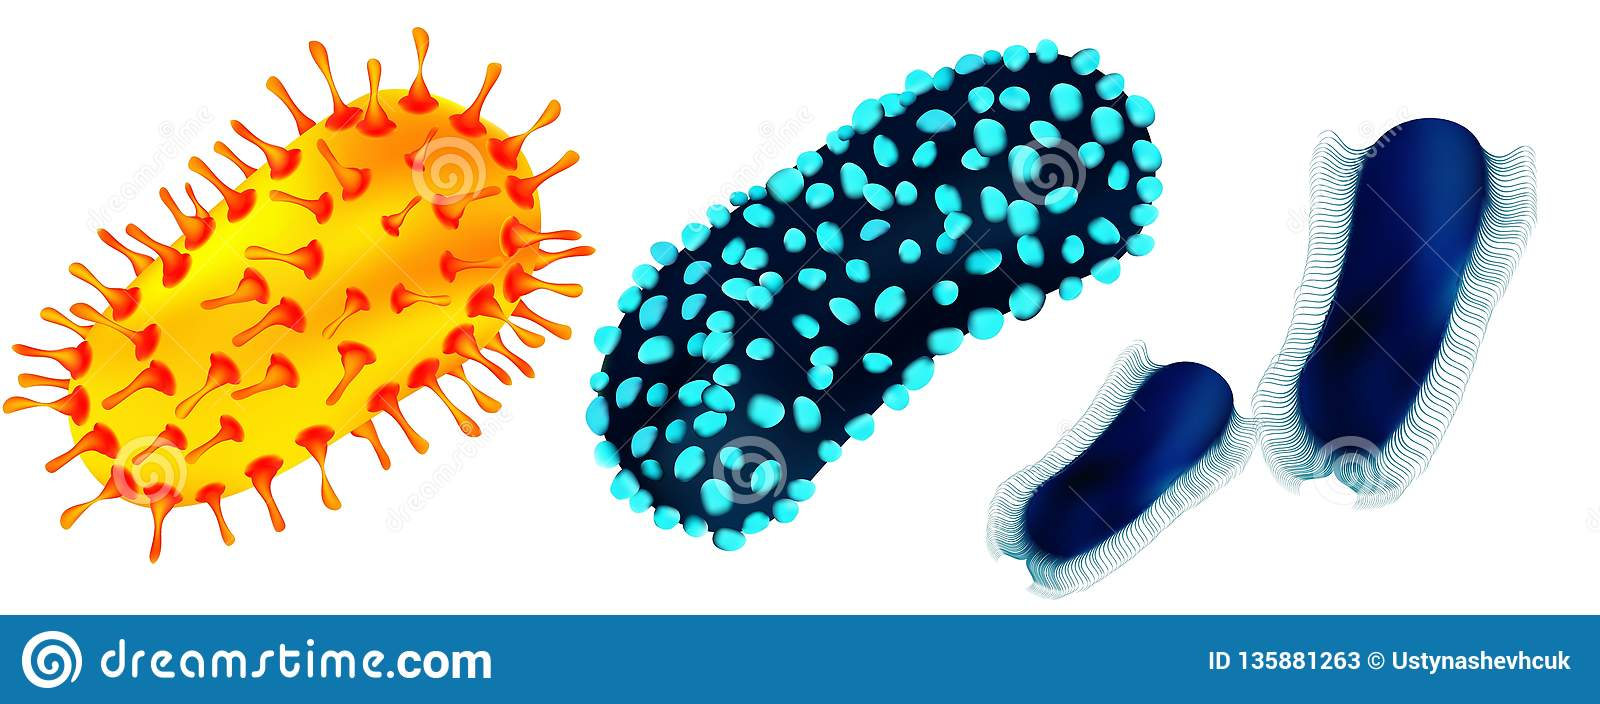 Set of viruses and bacteria isolated against a blom background. Viruses and bacteria under the microscope. Undead